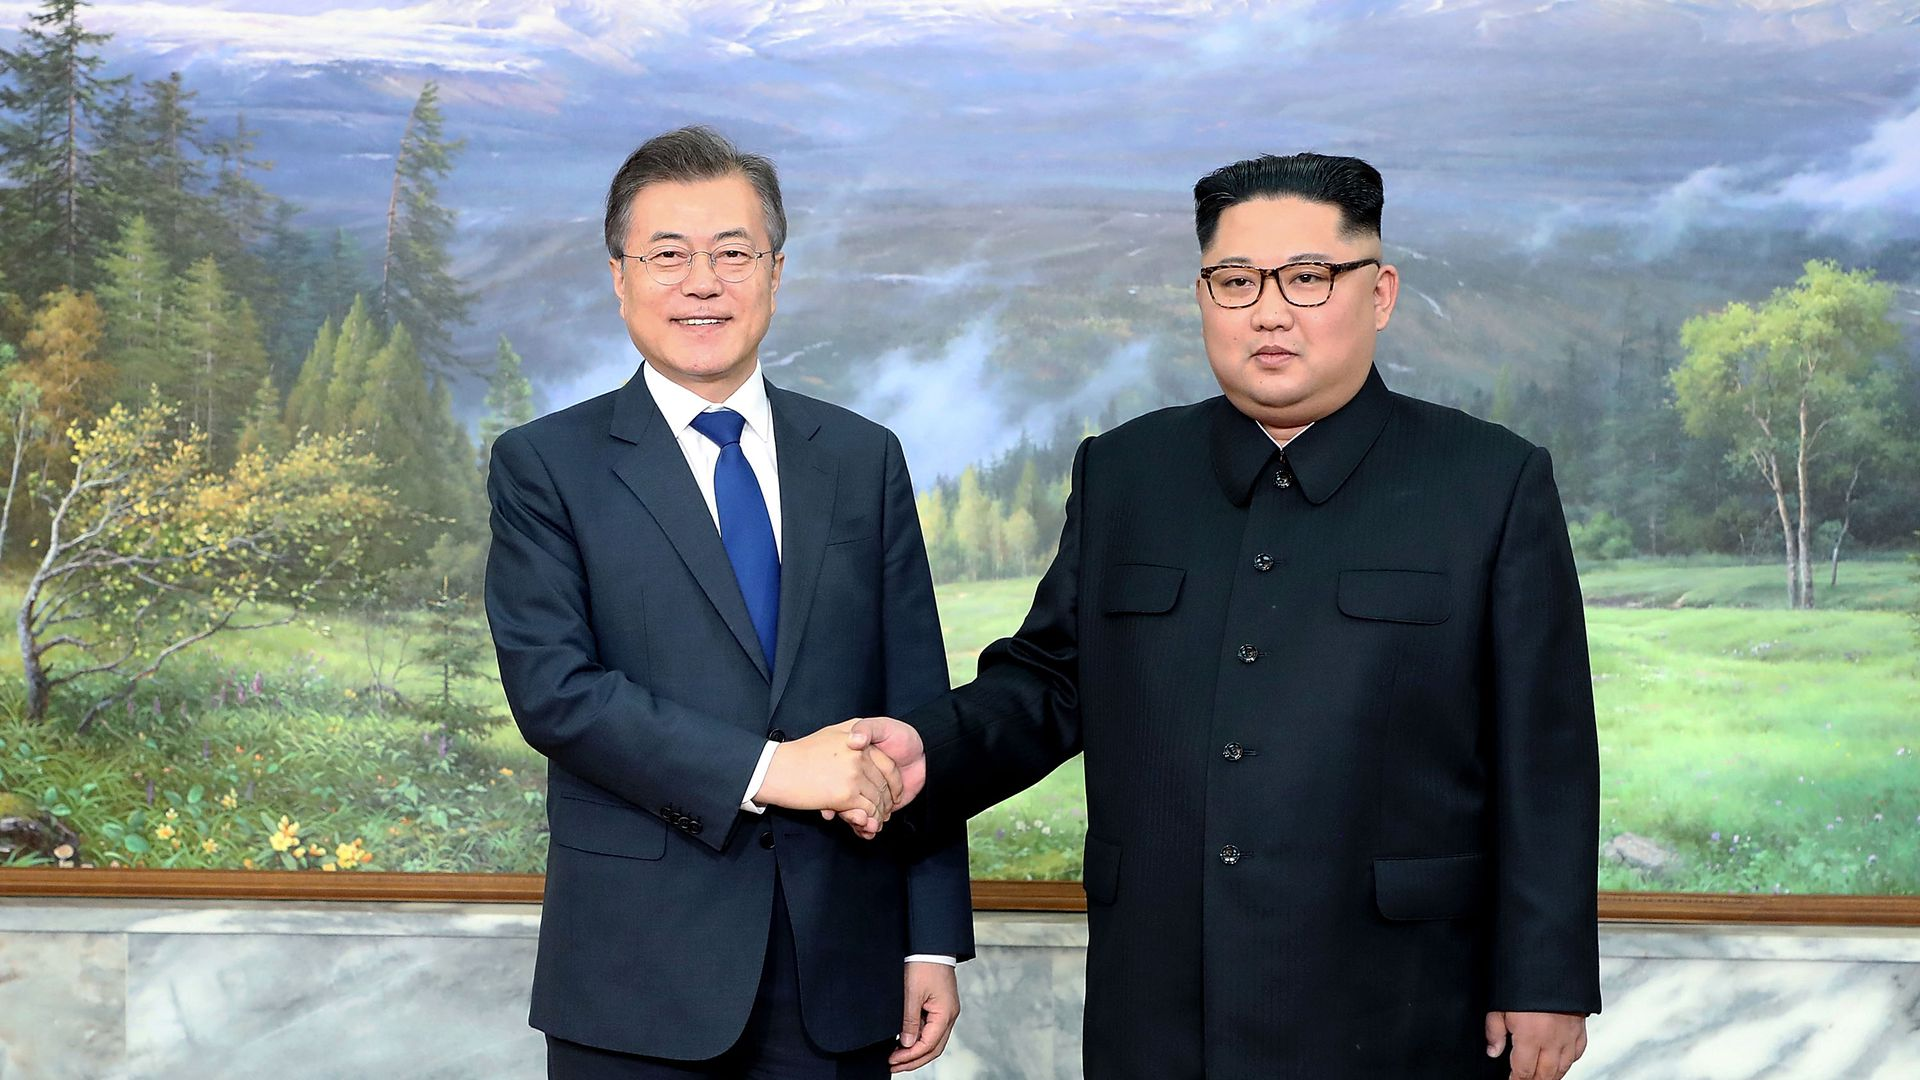 Moon Jae-in shaking hands with Kim Jong Un